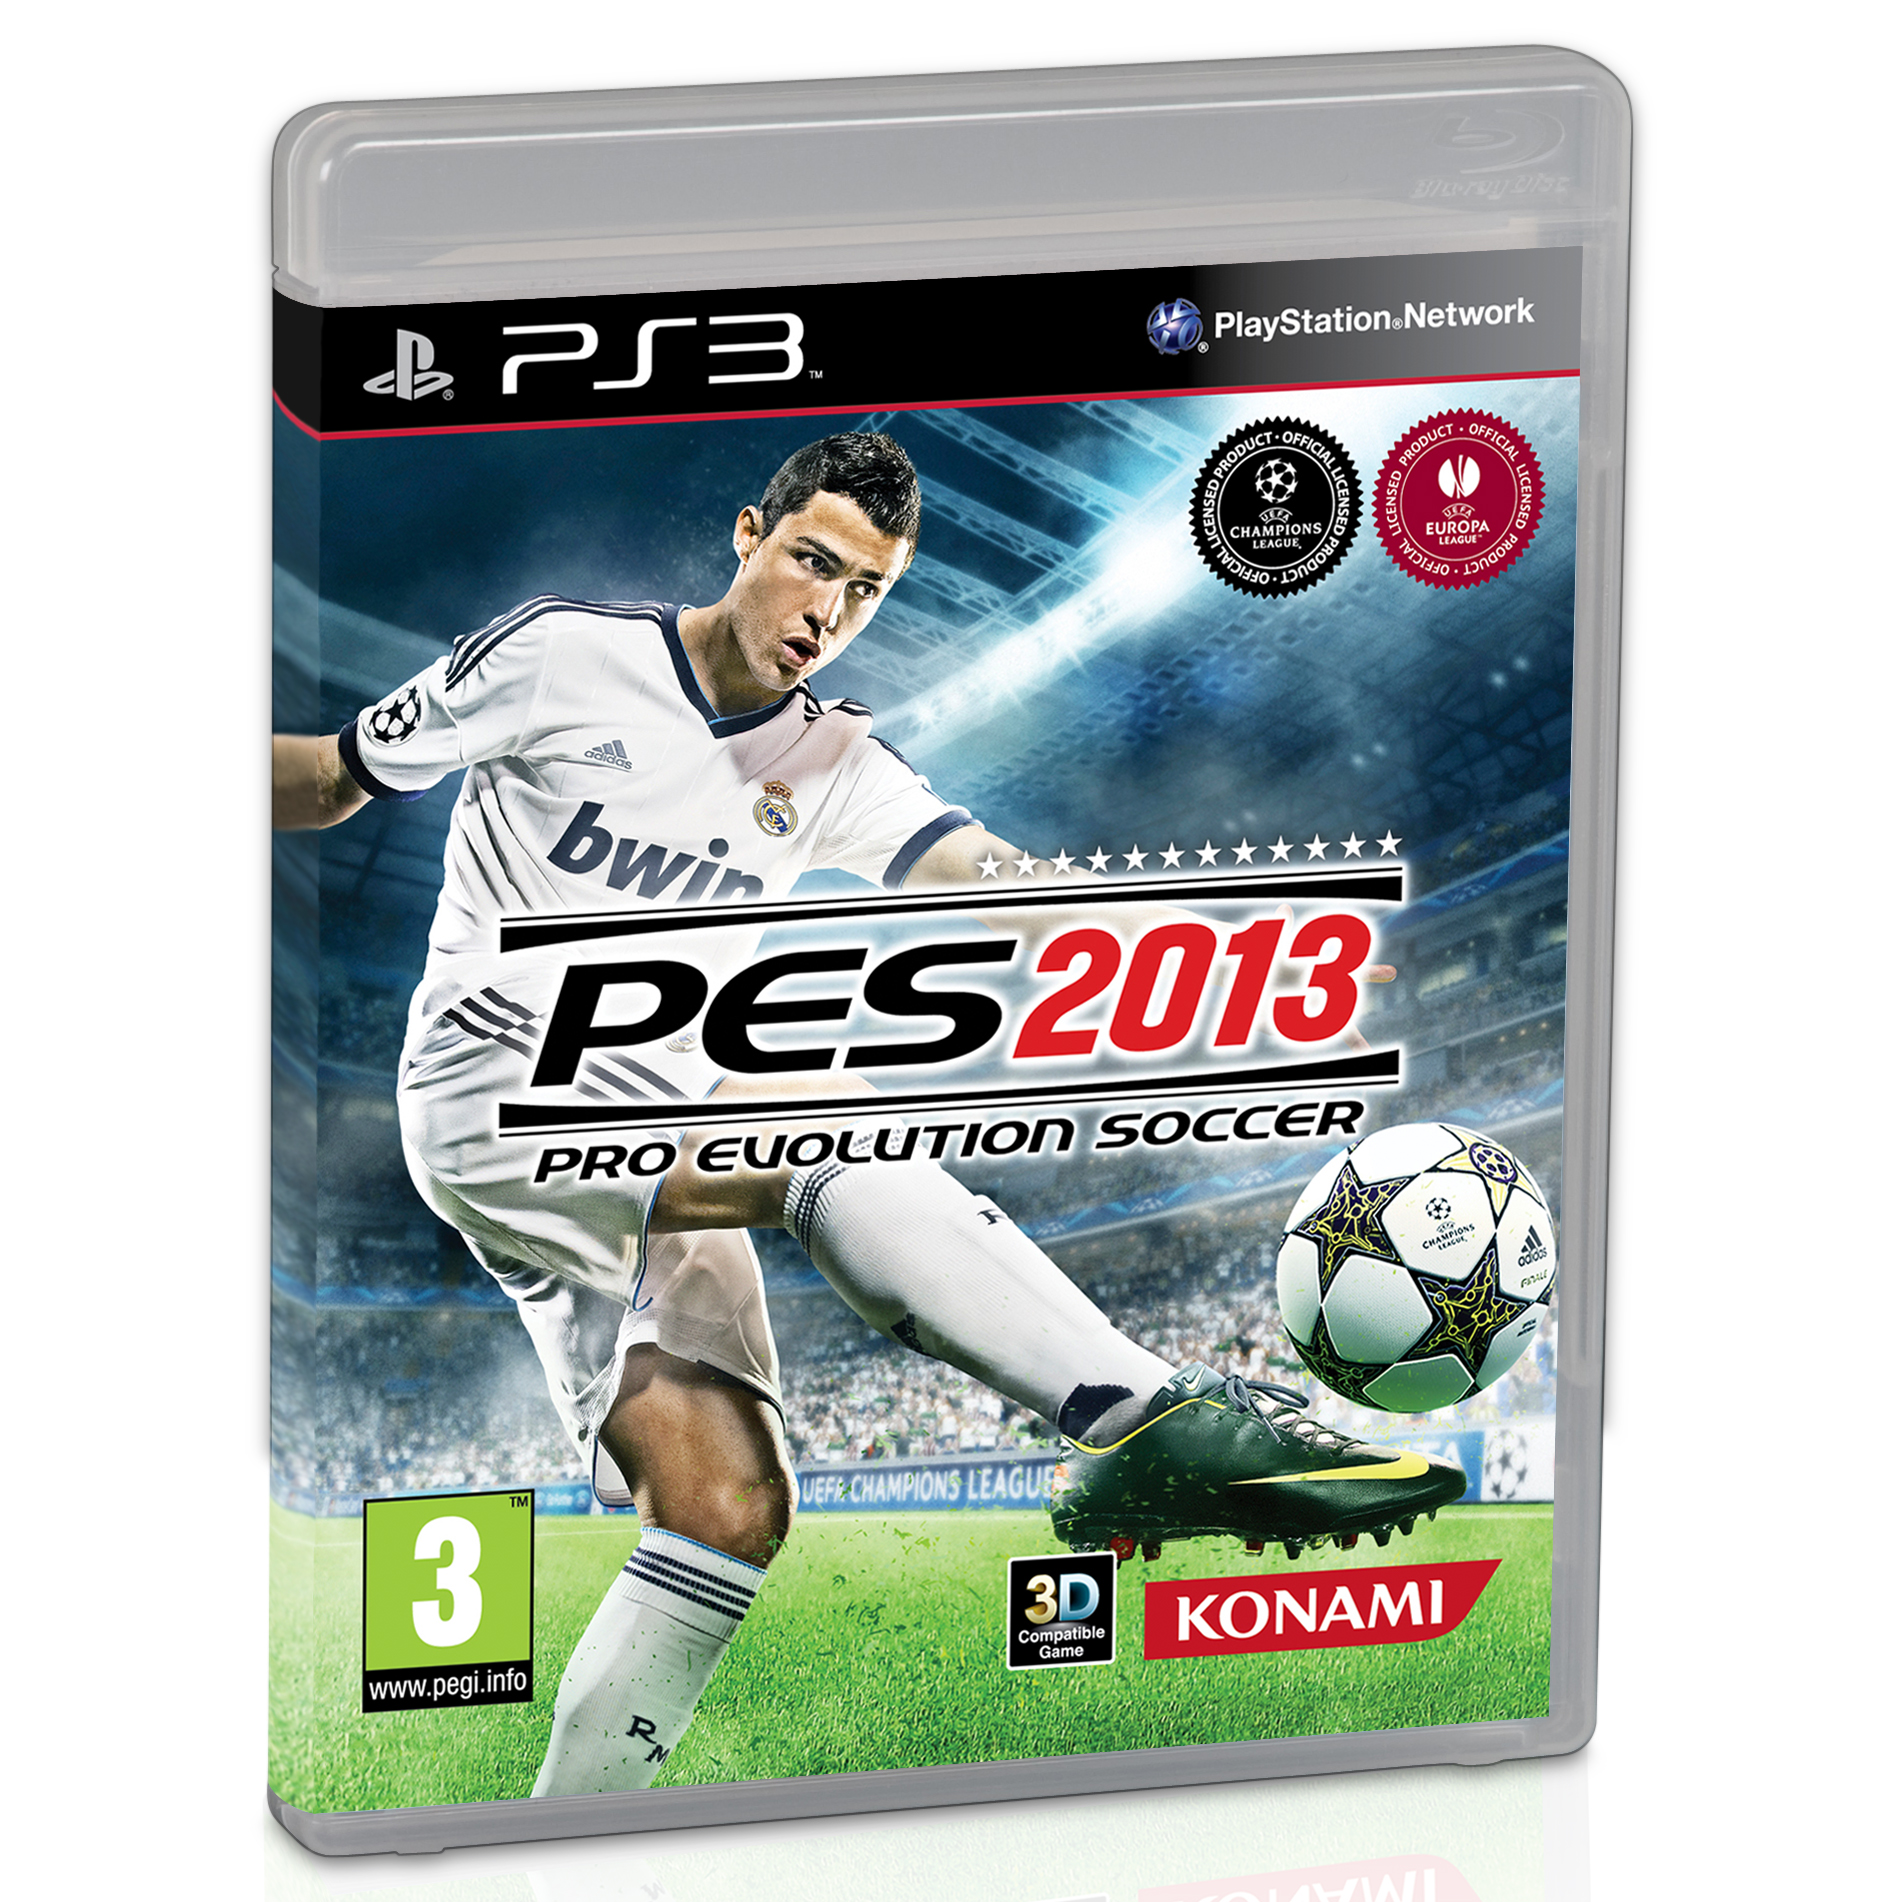 Manchester United Pro Evolution Soccer 2013 (Pes 2013) PS3 Game